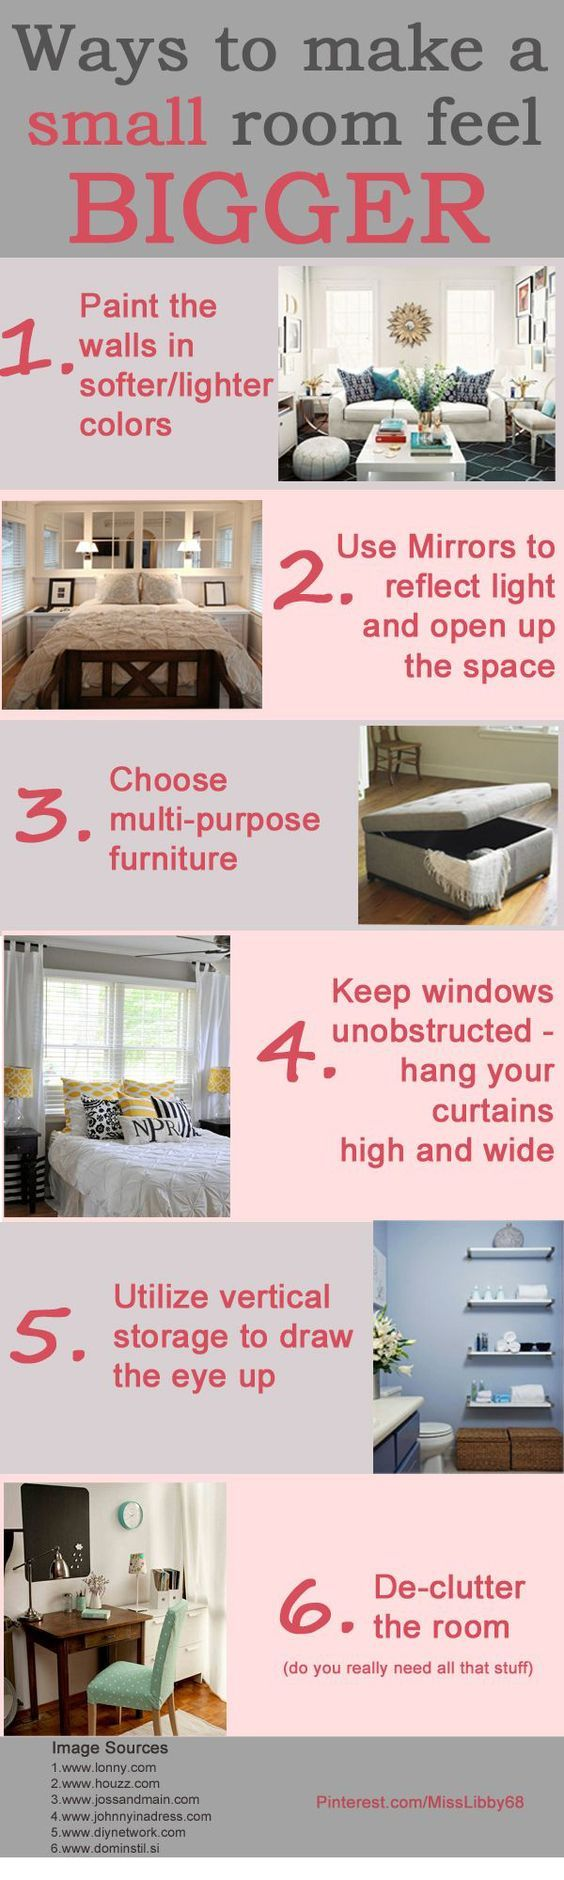 Best 25+ Small bedroom organization ideas on Pinterest